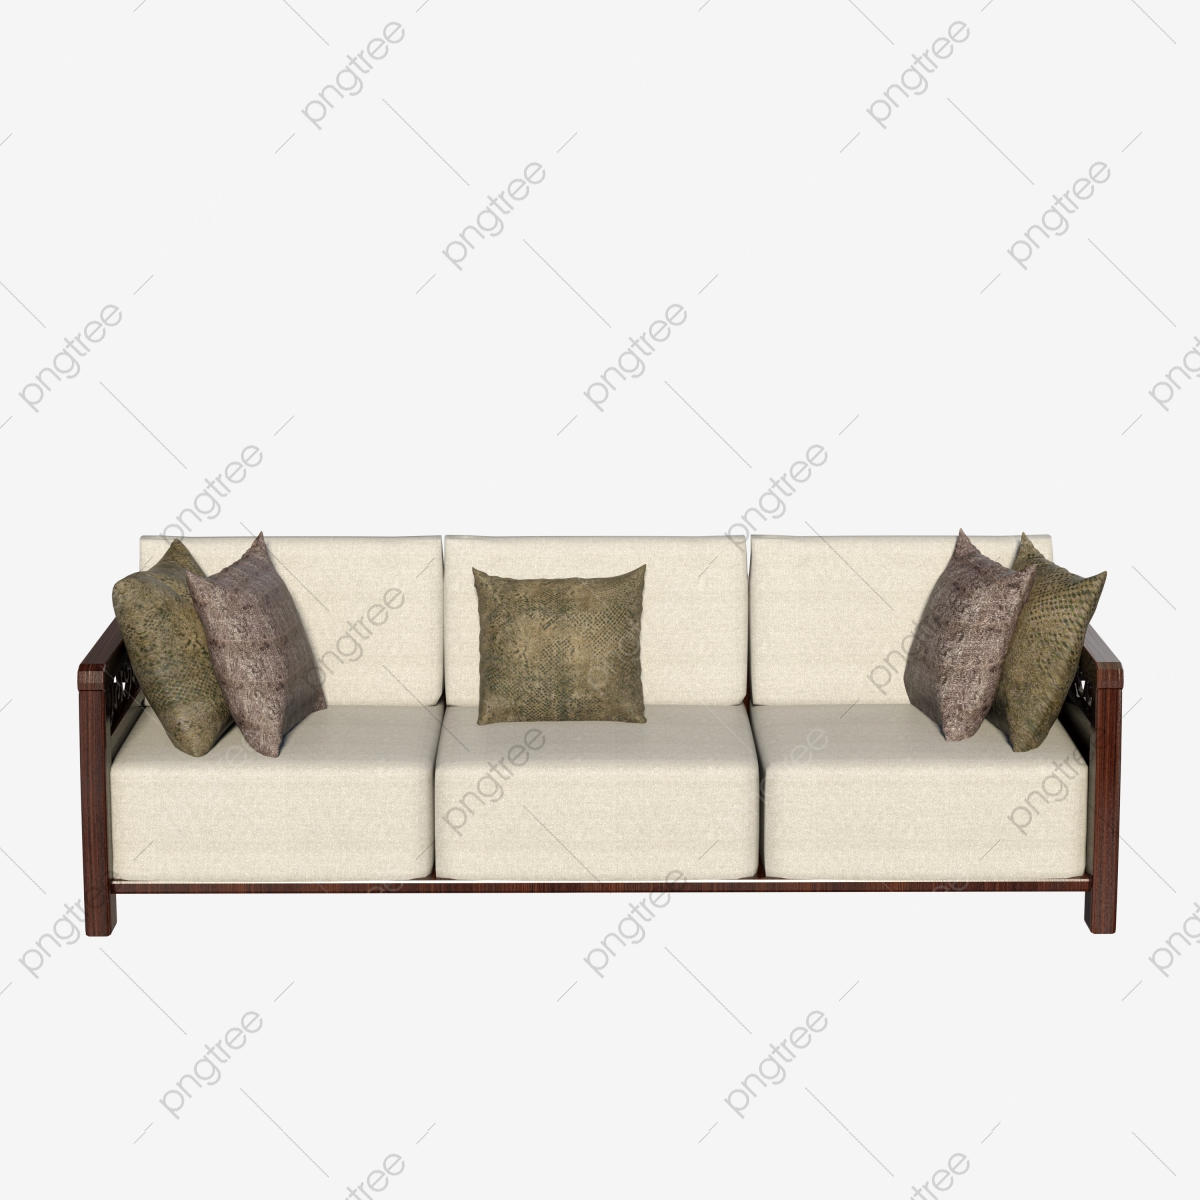 Groovy Solid Wood White Fabric Bench Sofa Solid Wood White Machost Co Dining Chair Design Ideas Machostcouk